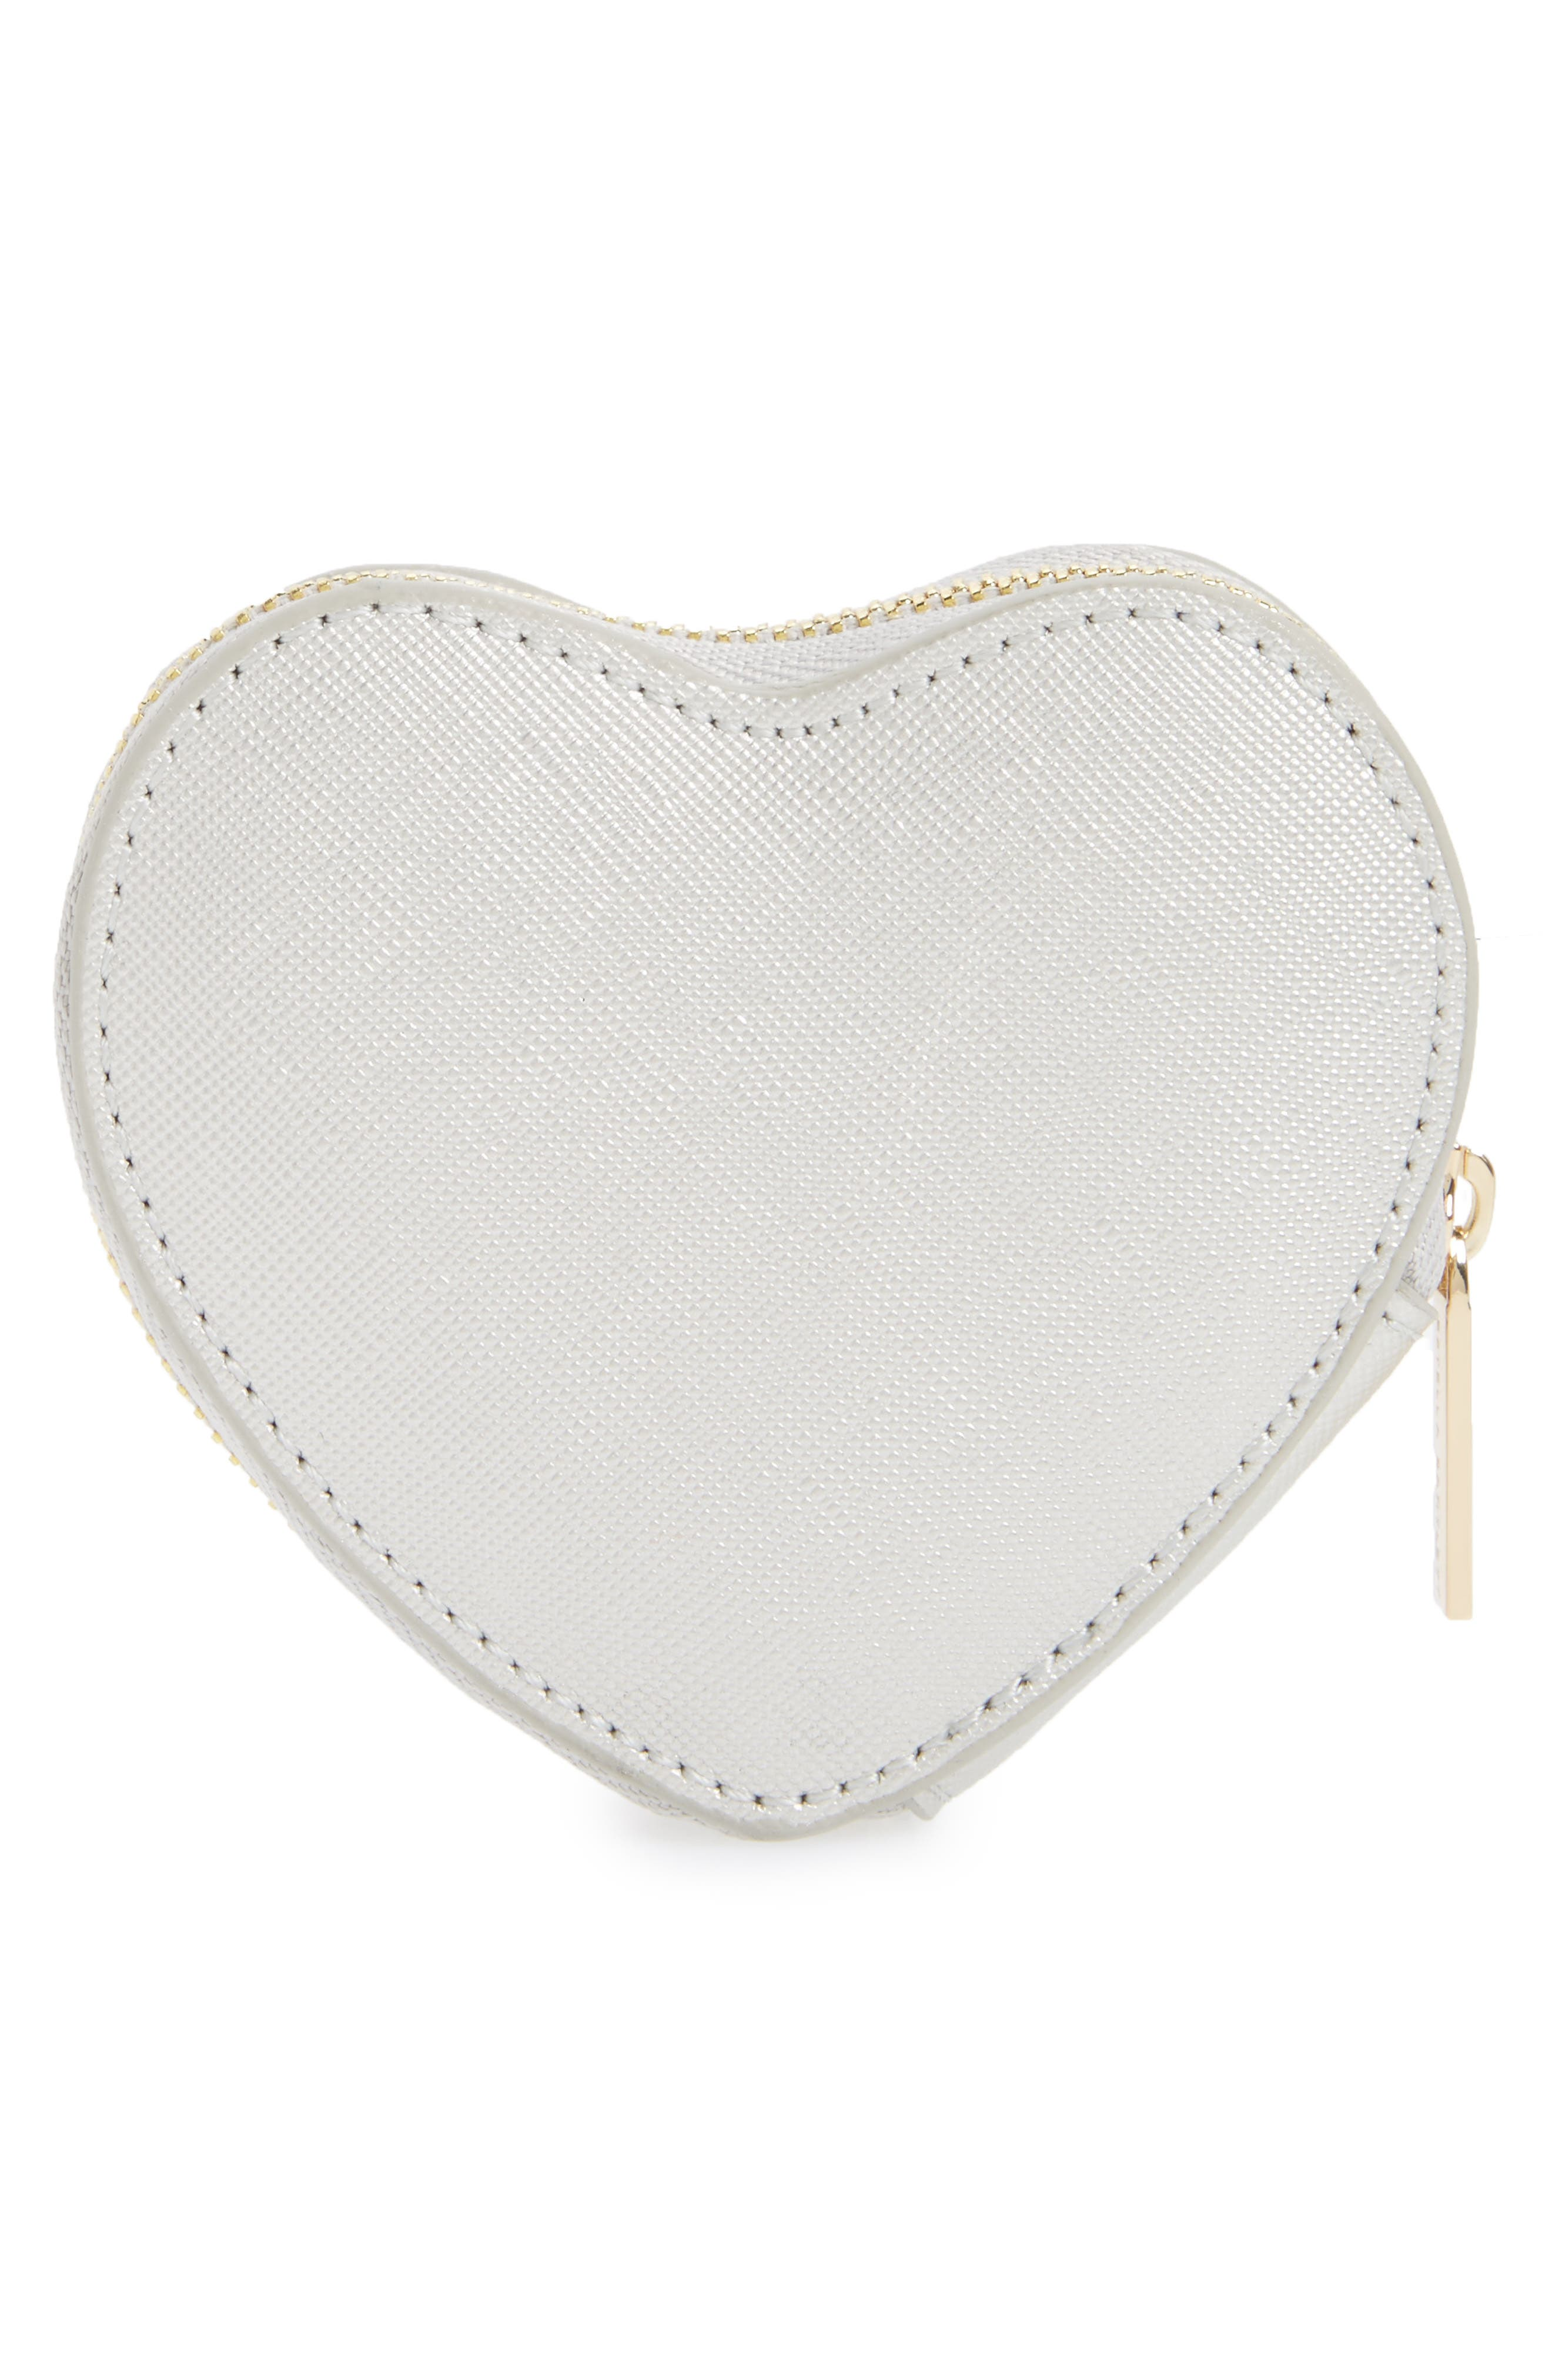 Heart Dream Faux Leather Coin Purse,                             Alternate thumbnail 3, color,                             Silver